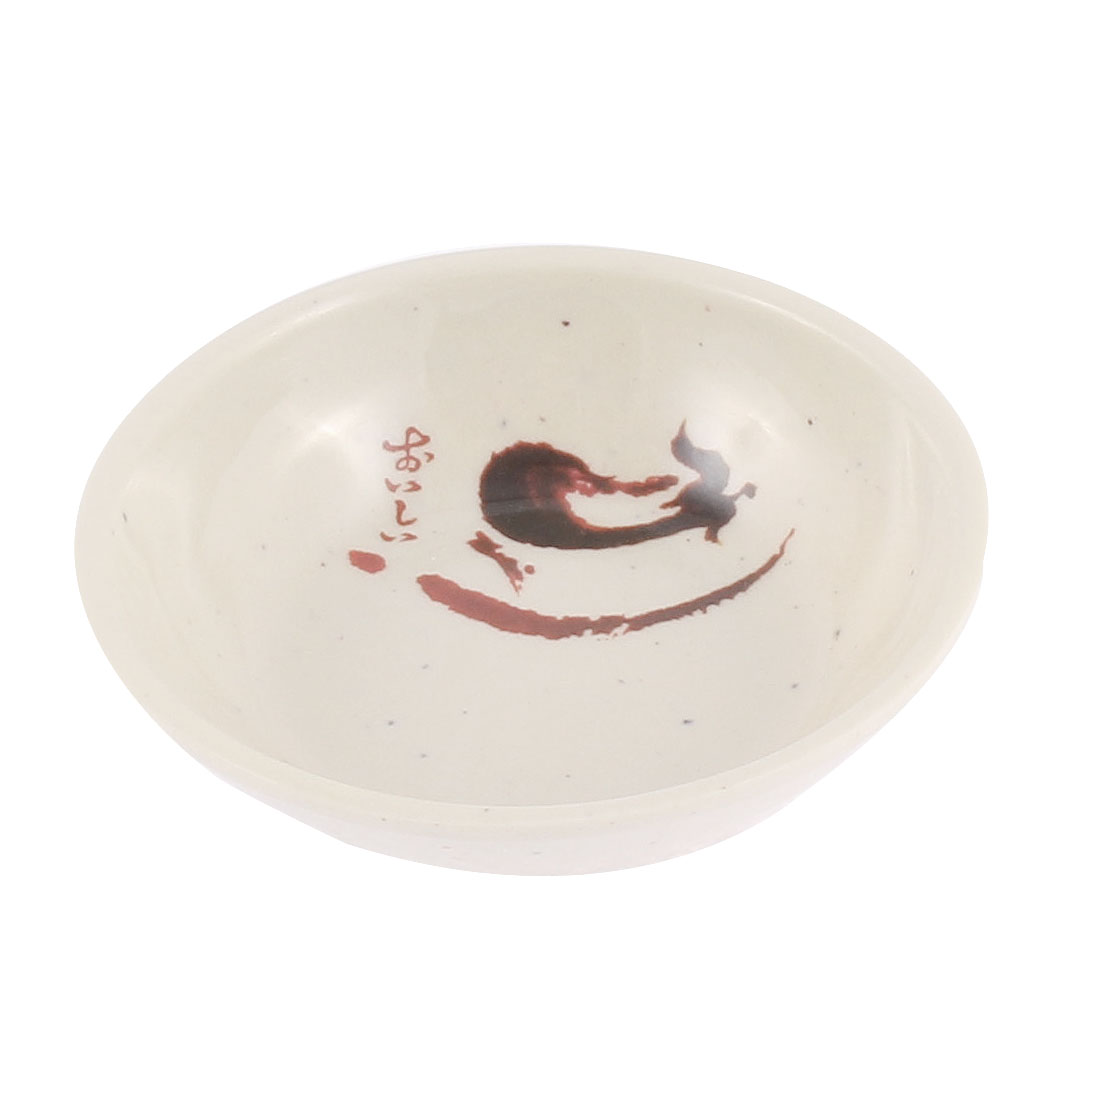 Eggplant Pattern Soy Sauce Dipping Dish Plate 7cm Dia